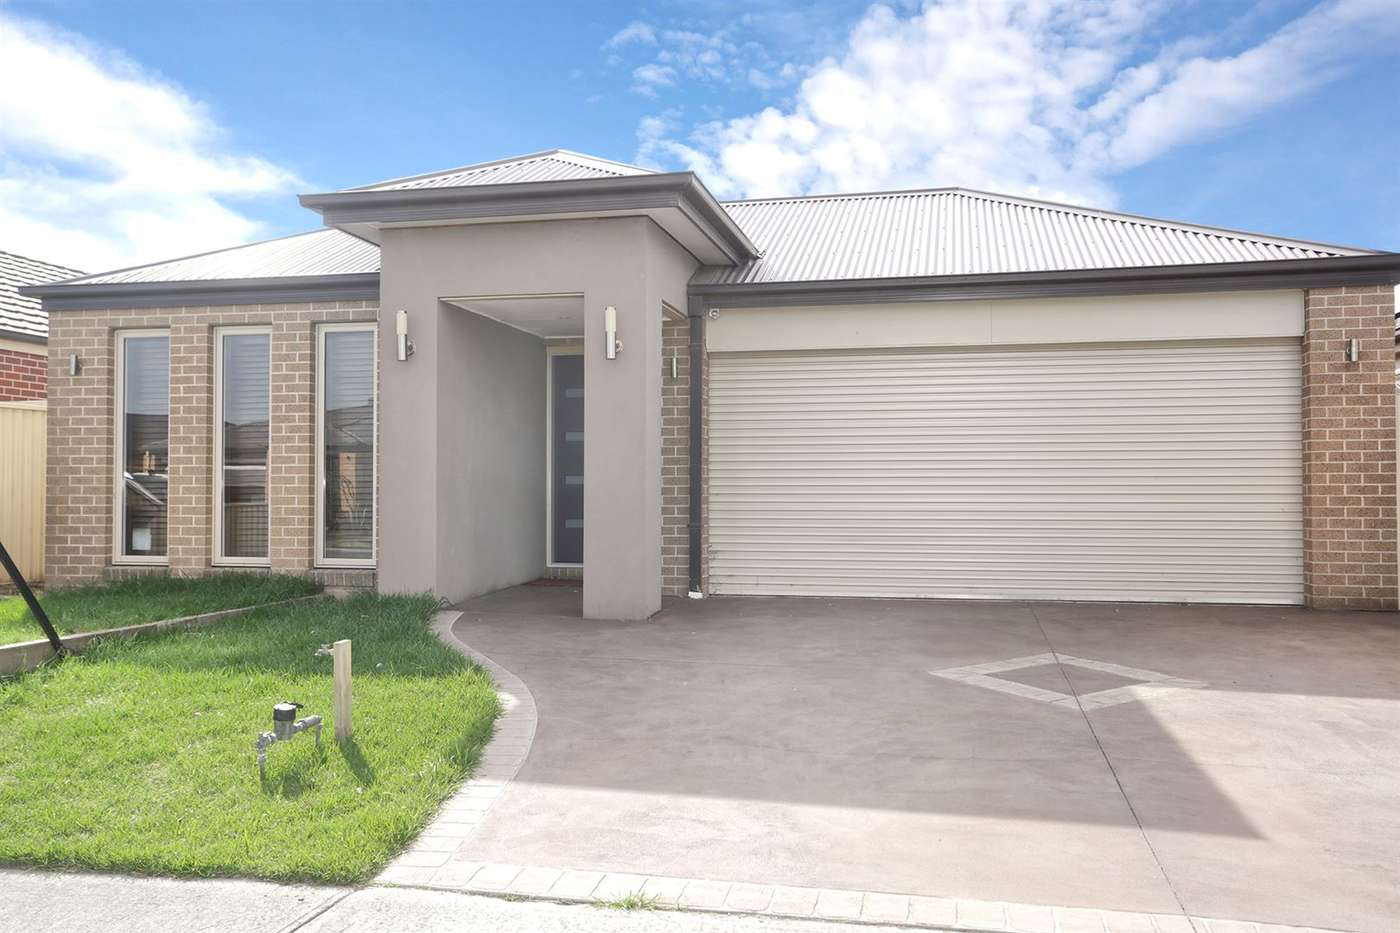 Main view of Homely house listing, 70 Bluehills Blvd, Pakenham, VIC 3810